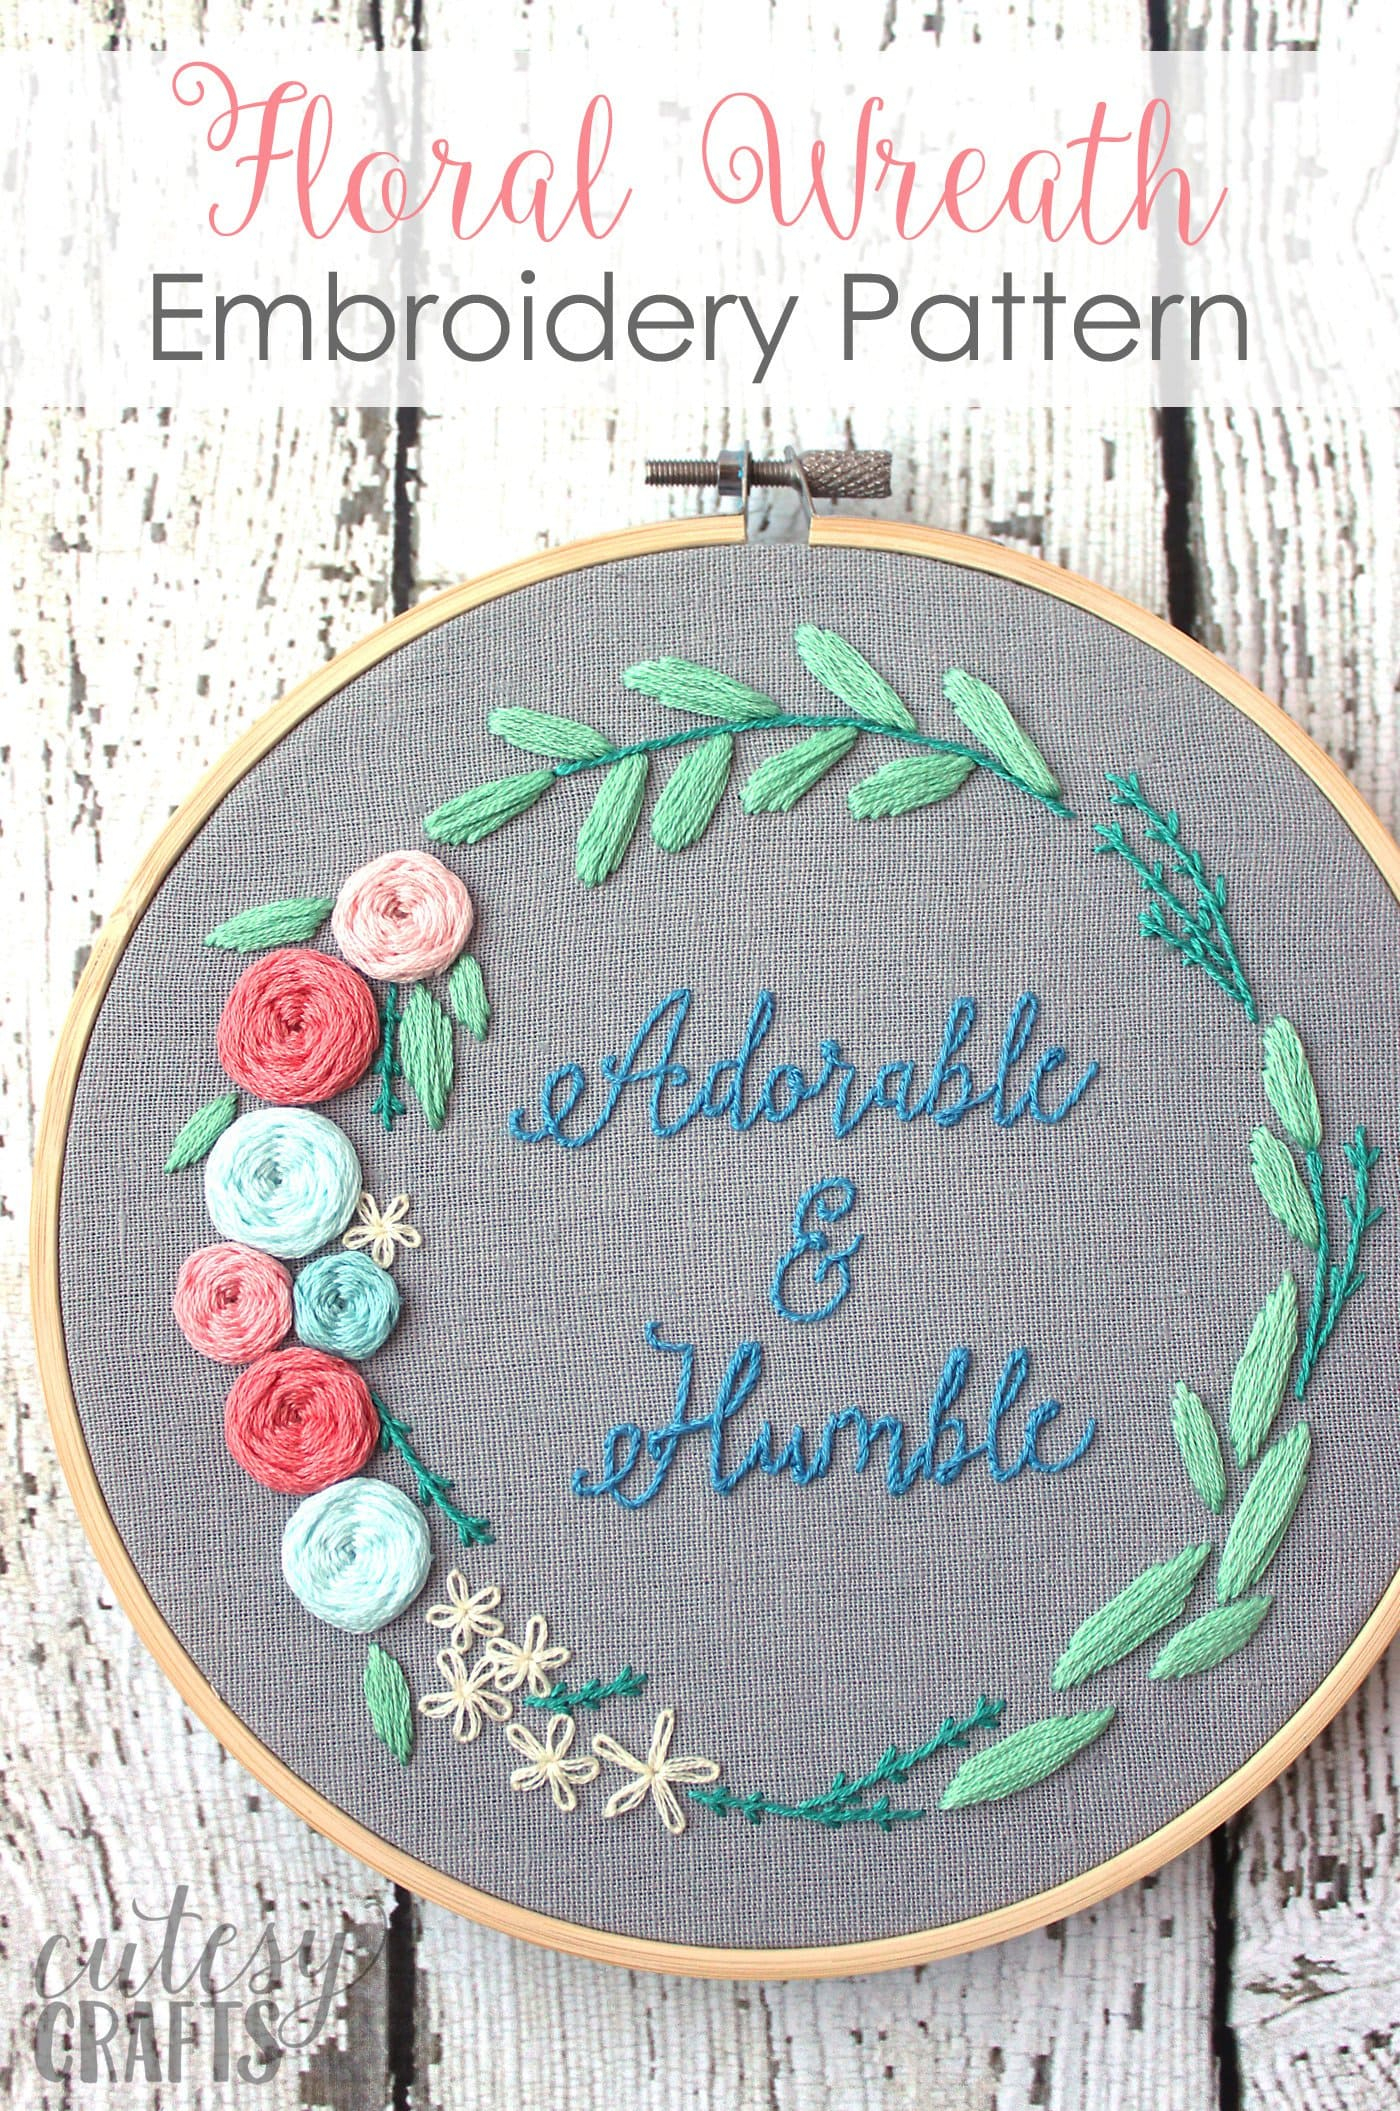 Free Hand Embroidery Pattern Adorable And Humble Free Floral Wreath Hand Embroidery Pattern